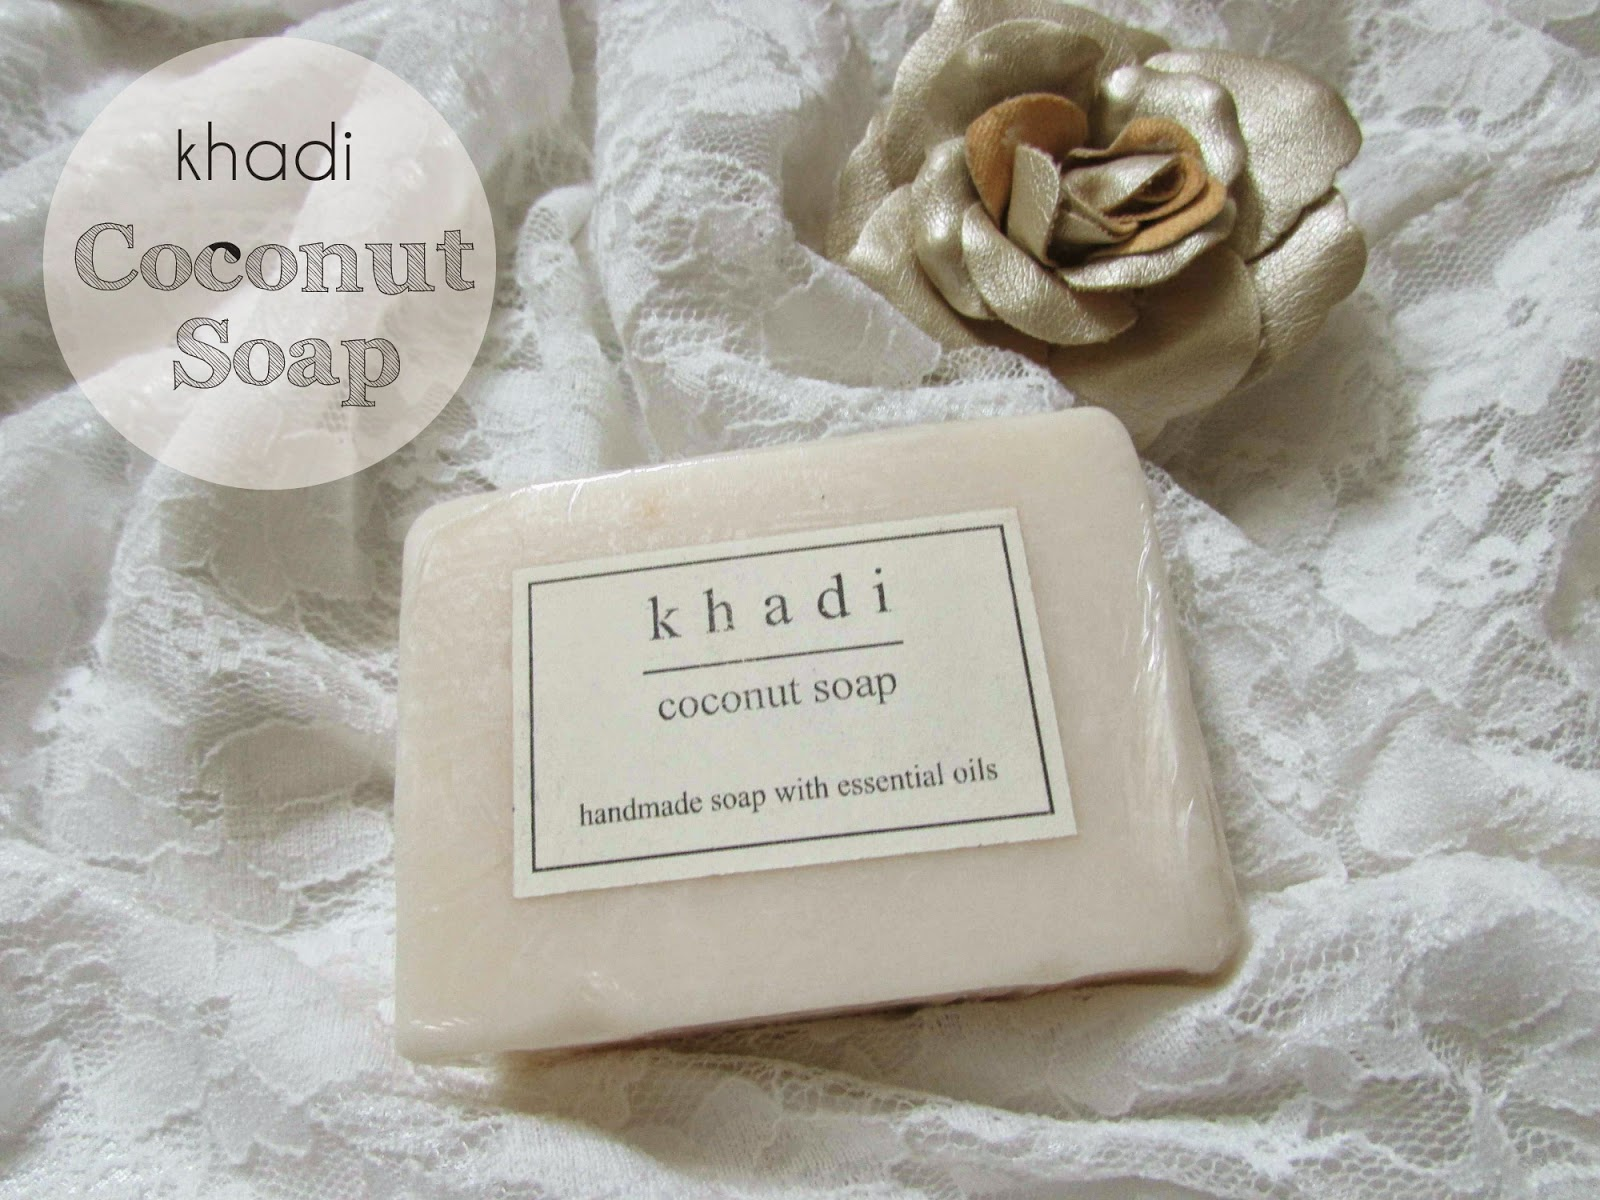 coconut, coconut soap, coconut milk soap, herbal soap, herbal coconut soap, herbal body wash , herbal coconut milk soap, chemical free soap, chemical free coconut soap, pareben free soap, paraben free soap, paraben free coconut soap, handmade soap, handmade coconut soap, handmade soap online, handmade soap price, paraben free soap price, paraben free soap online, paraben free soap online, herbal soap, chemical free soap, paraben free soap, all natural soap,herbal body wash, chemical free bodywash, paraben free bodywash, all natural bodywash,herbal scrub, chemical free scrub, paraben free scrub, all natural scrub,herbal lotion, chemical free lotion, paraben free lotion, all natural lotion,herbal body lotion, chemical free body lotion, paraben free body lotion, all natural body lotion,herbal moisturizer, chemical free moisturizer, paraben free moisturizer, all natural moisturizer,herbal face cream, chemical free face cream, paraben free face cream, all natural face cream,herbal rose water, chemical free rose water, paraben free rose water, all natural rose water,herbal aloevera gel, chemical free aloevera gel, paraben free aloevera gel, all natural aloevera gel, herbal oil, chemical free oil, paraben free oil, all natural oil, herbal hair pack, chemical free hair pack, paraben free hair pack, all natural hair pack, herbal anti blemish cream, chemical free anti blemish cream, paraben free anti blemish cream, all natural anti blemish cream, khadi herbal products, khadi chemical free products ,khadi paraben free products, khadi all natural products,herbal products online, chemical free products  online , paraben free products online, all natural products online,cheap herbal products, cheap chemical free products ,cheap paraben free products,cheap all natural products, khadi herbal soap, khadi chemical free soap,khadi  paraben free soap,khadi  all natural soap,khadi herbal body wash,khadi  chemical free bodywash,khadi  paraben free bodywash, khadi all natural bodywash, khadi herbal scrub,khadi  chemical free scrub,khadi  paraben free scrub,khadi  all natural scrub,khadi herbal lotion,khadi  chemical free lotion, khadi paraben free lotion, khadi all natural lotion,khadi herbal body lotion, khadi chemical free body lotion, khadi paraben free body lotion, khadi all natural body lotion,khadi herbal moisturizer, khadi chemical free moisturizer, khadi paraben free moisturizer,khadi  all natural moisturizer,khadi herbal face cream,khadi  chemical free face cream,khadi  paraben free face cream, khadi all natural face cream,khadi herbal rose water,khadi  chemical free rose water, khadi paraben free rose water, khadi all natural rose waterkhadi ,herbal aloevera gel, khadi chemical free aloevera gel,khadi  paraben free aloevera gel,khadi  all natural aloevera gel,khadi  herbal oil, chemical free oil, khadi paraben free oil, khadi all natural oil, khadi herbal hair pack, khadi chemical free hair pack,khadi  paraben free hair pack, khadi all natural hair pack, khadi herbal anti blemish cream, khadi chemical free anti blemish cream, khadi paraben free anti blemish cream, khadi all natural anti blemish cream, khadi haul , huge khadi haul, khadi products online , khadi products prices